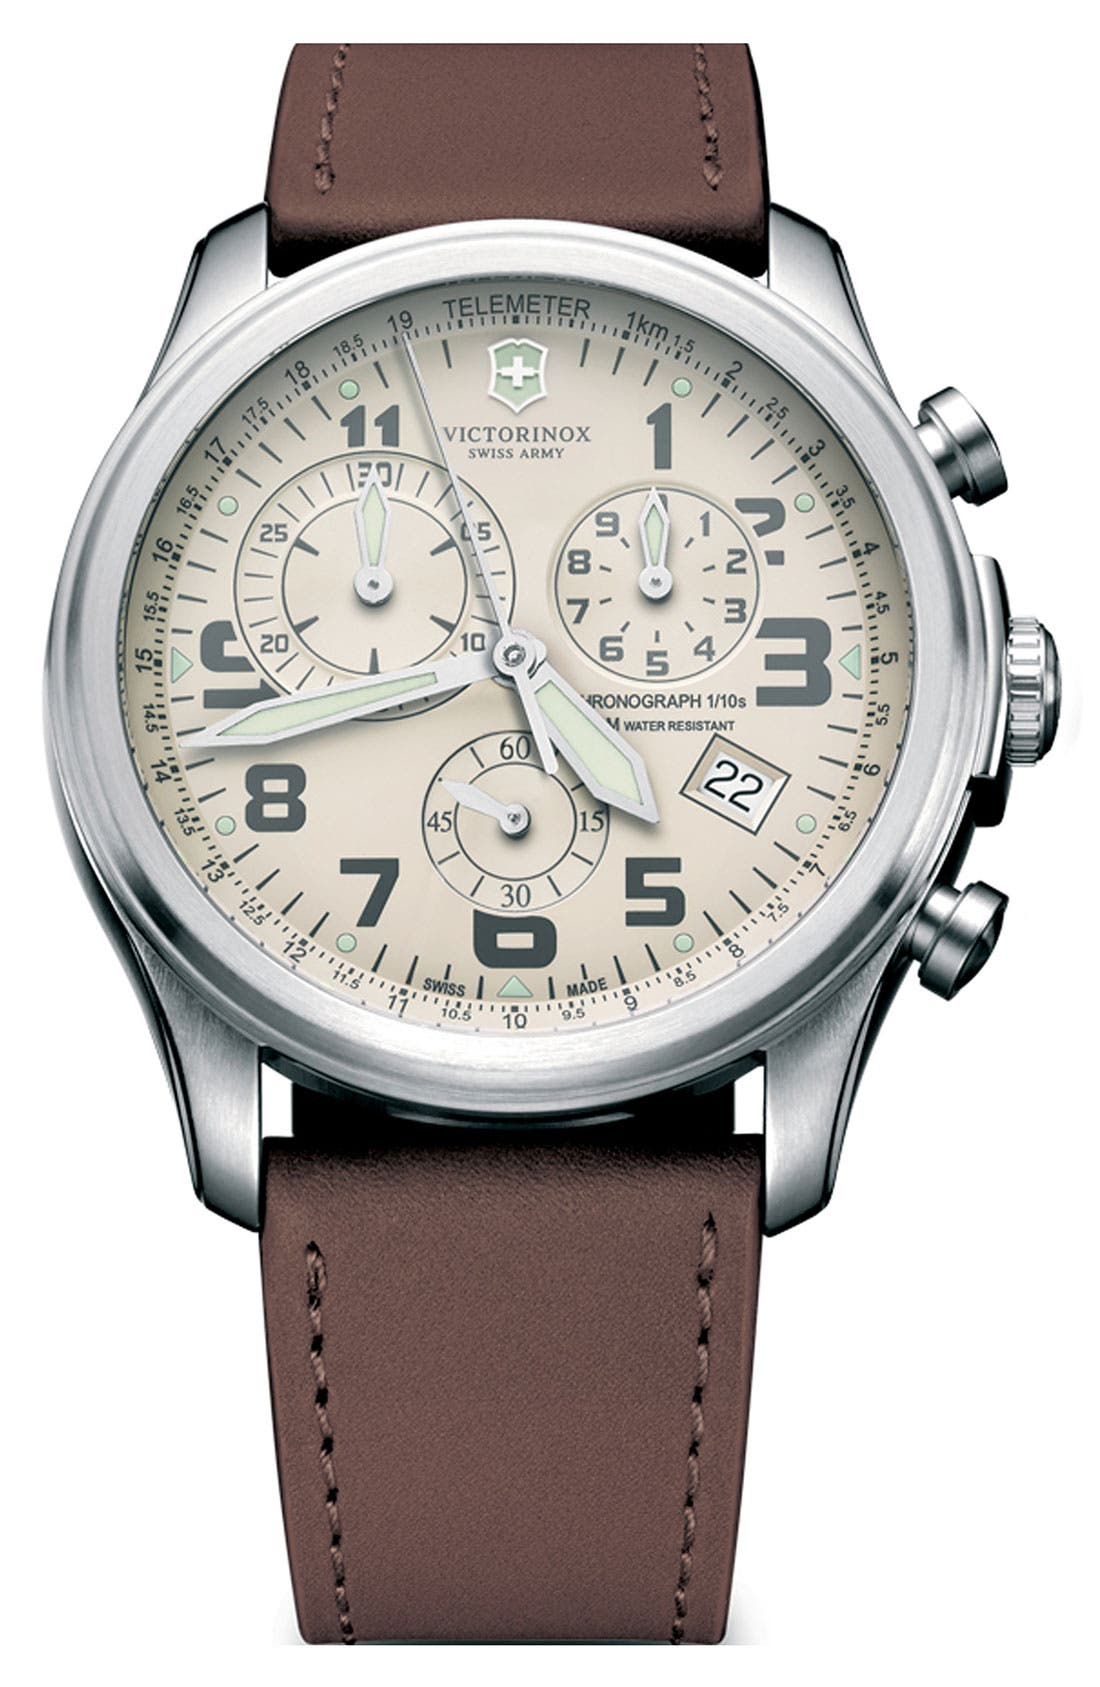 Alternate Image 1 Selected - Victorinox Swiss Army® 'Infantry - Vintage' Chronograph Leather Strap Watch, 44mm